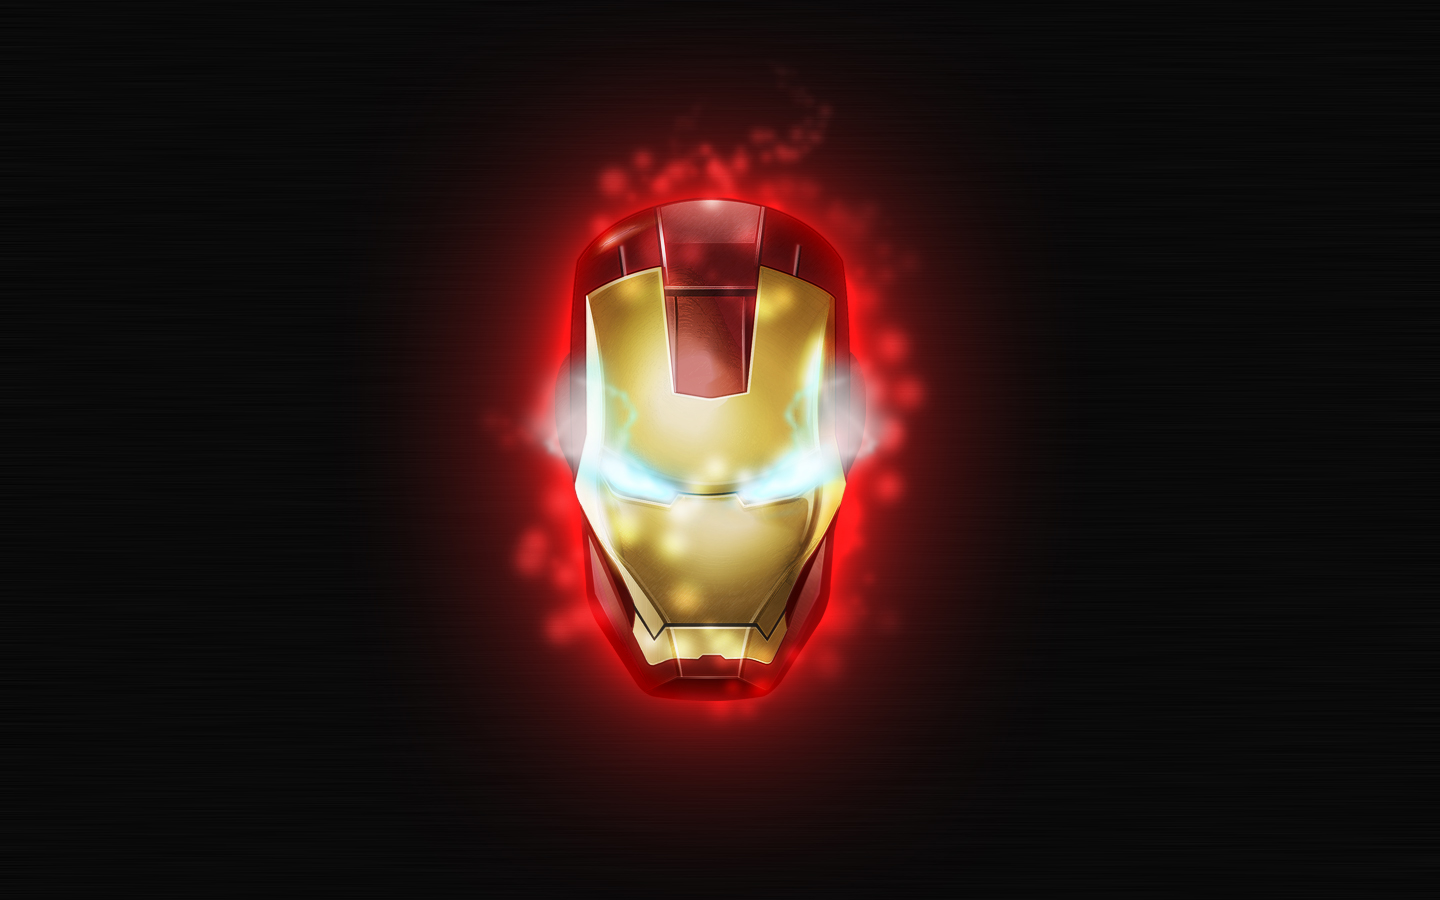 35 Iron Man Hd Wallpapers For Desktop: Desktop Wallpapers 1080p: IRON MAN 3